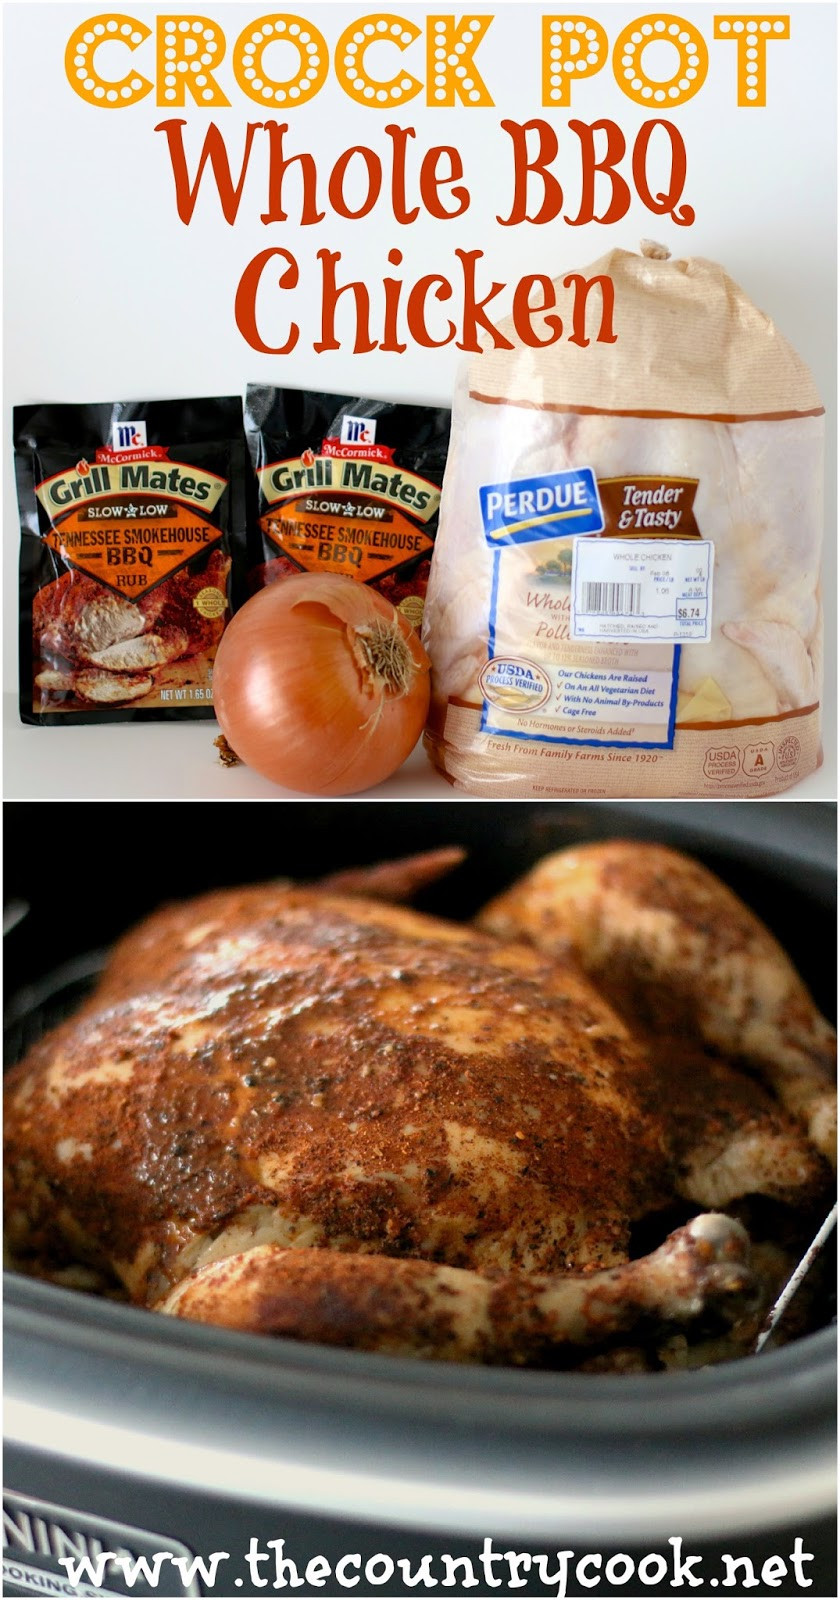 Crockpot Whole Chicken Recipes  The Country Cook Crock Pot Whole BBQ Chicken